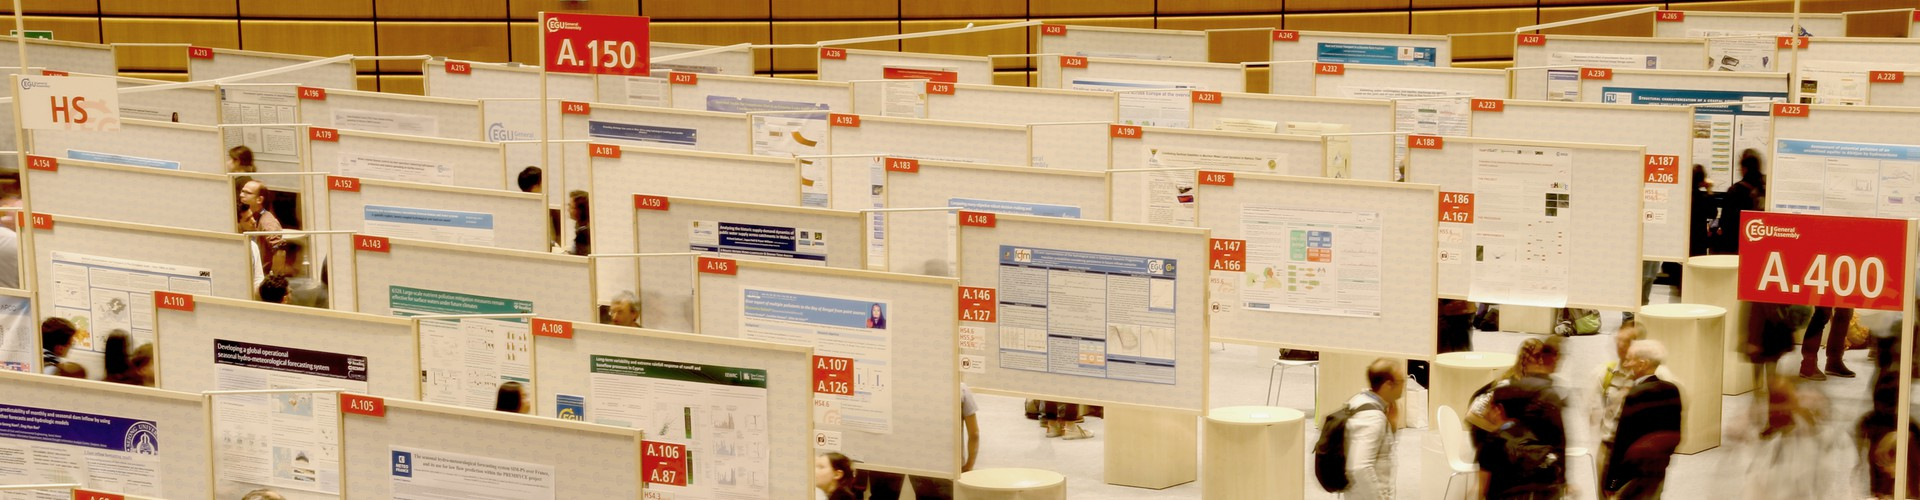 Poster session at the EGU 2018 General Assembly (Credit: EGU/Keri McNamara)